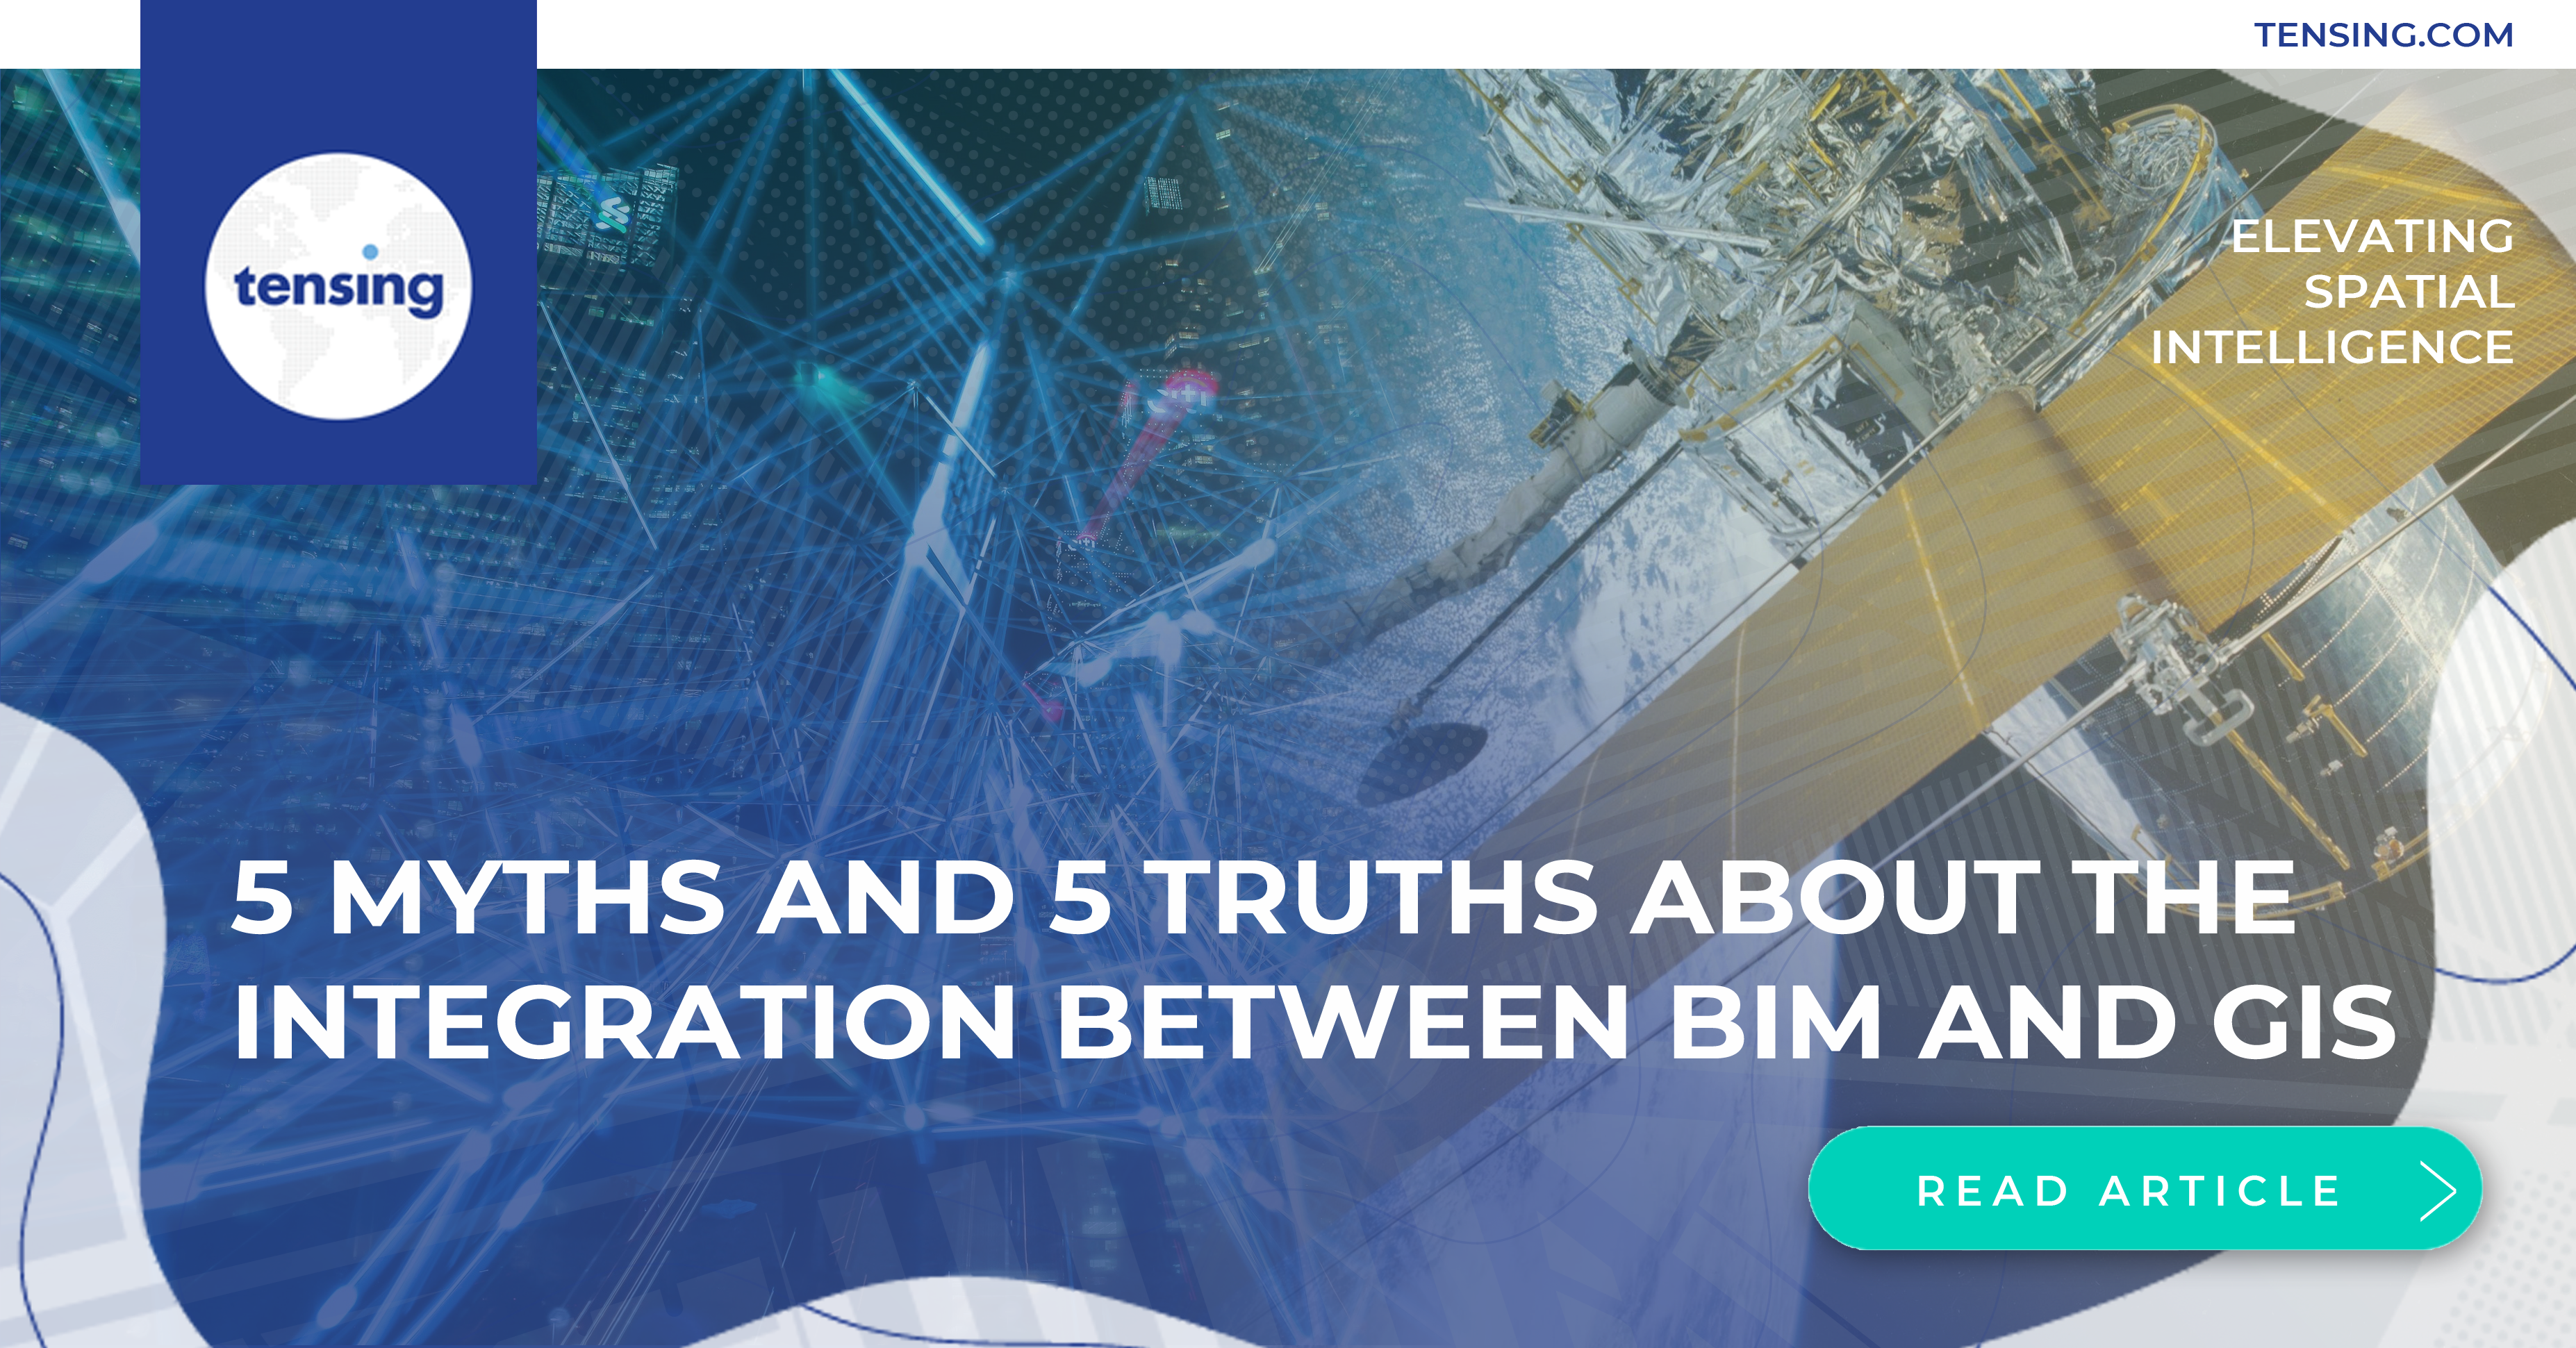 5 myths and 5 truths about the integration between BIM and GIS